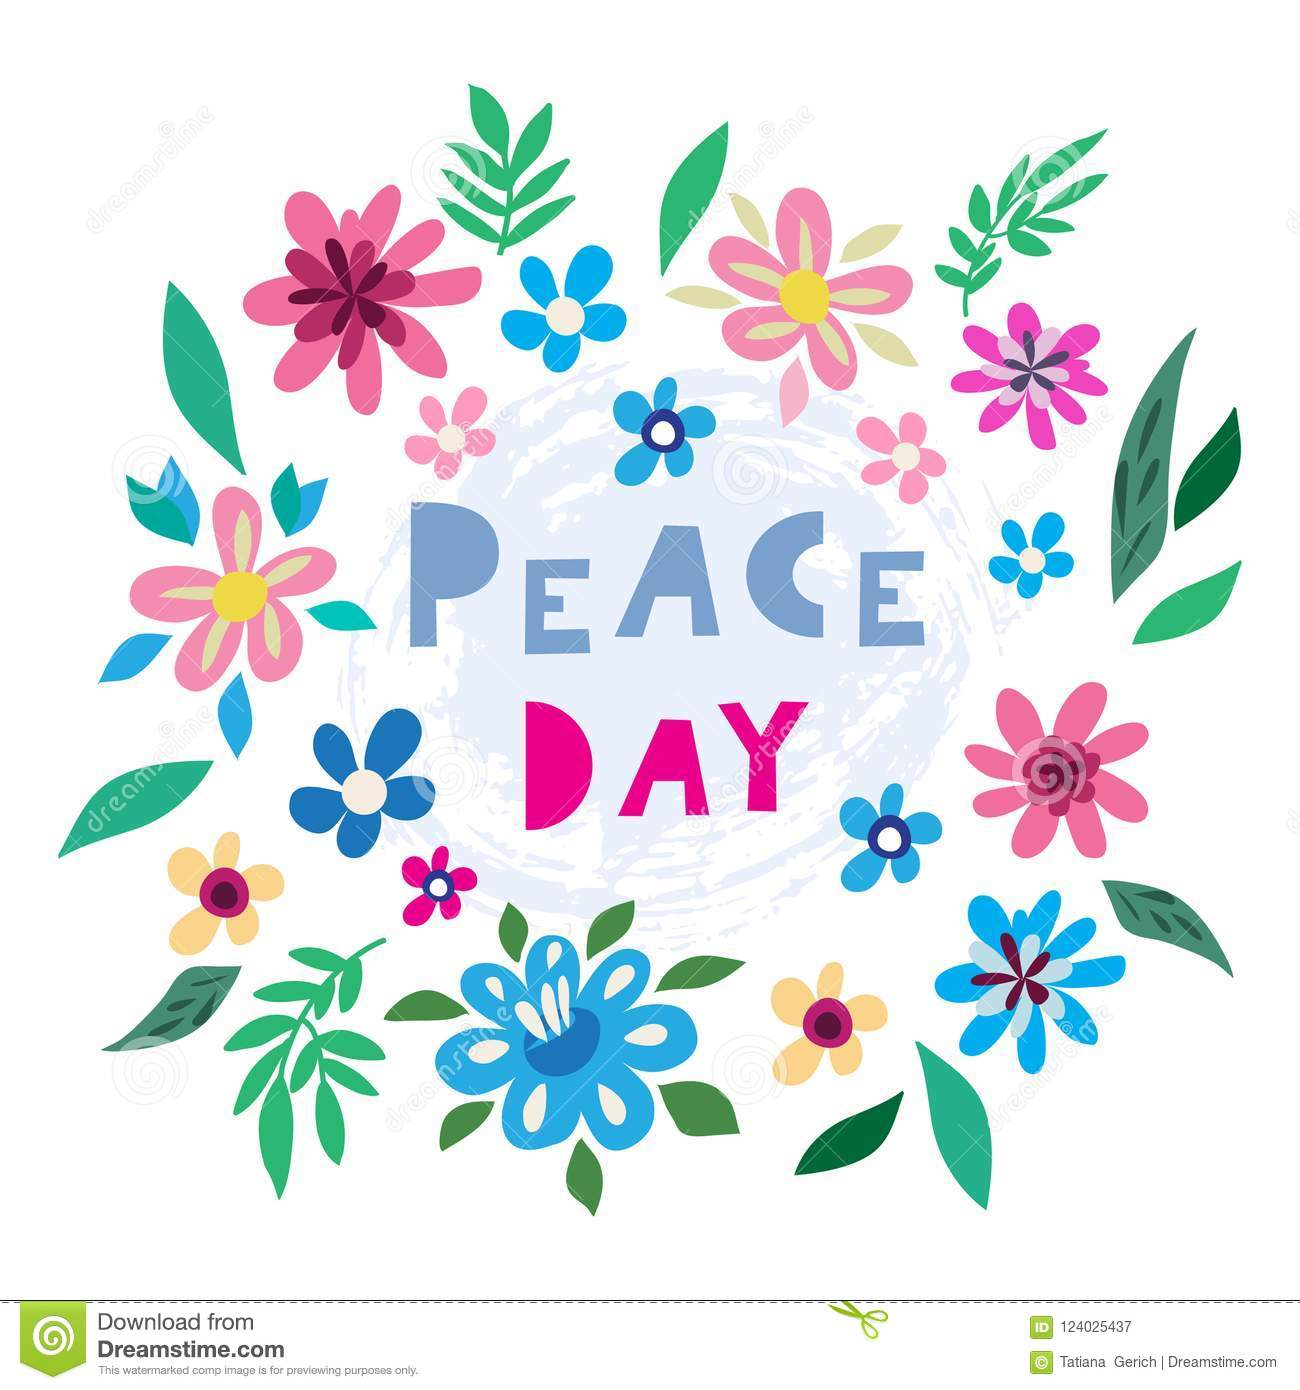 Peace day template poster stock vector. Illustration of drawing ...